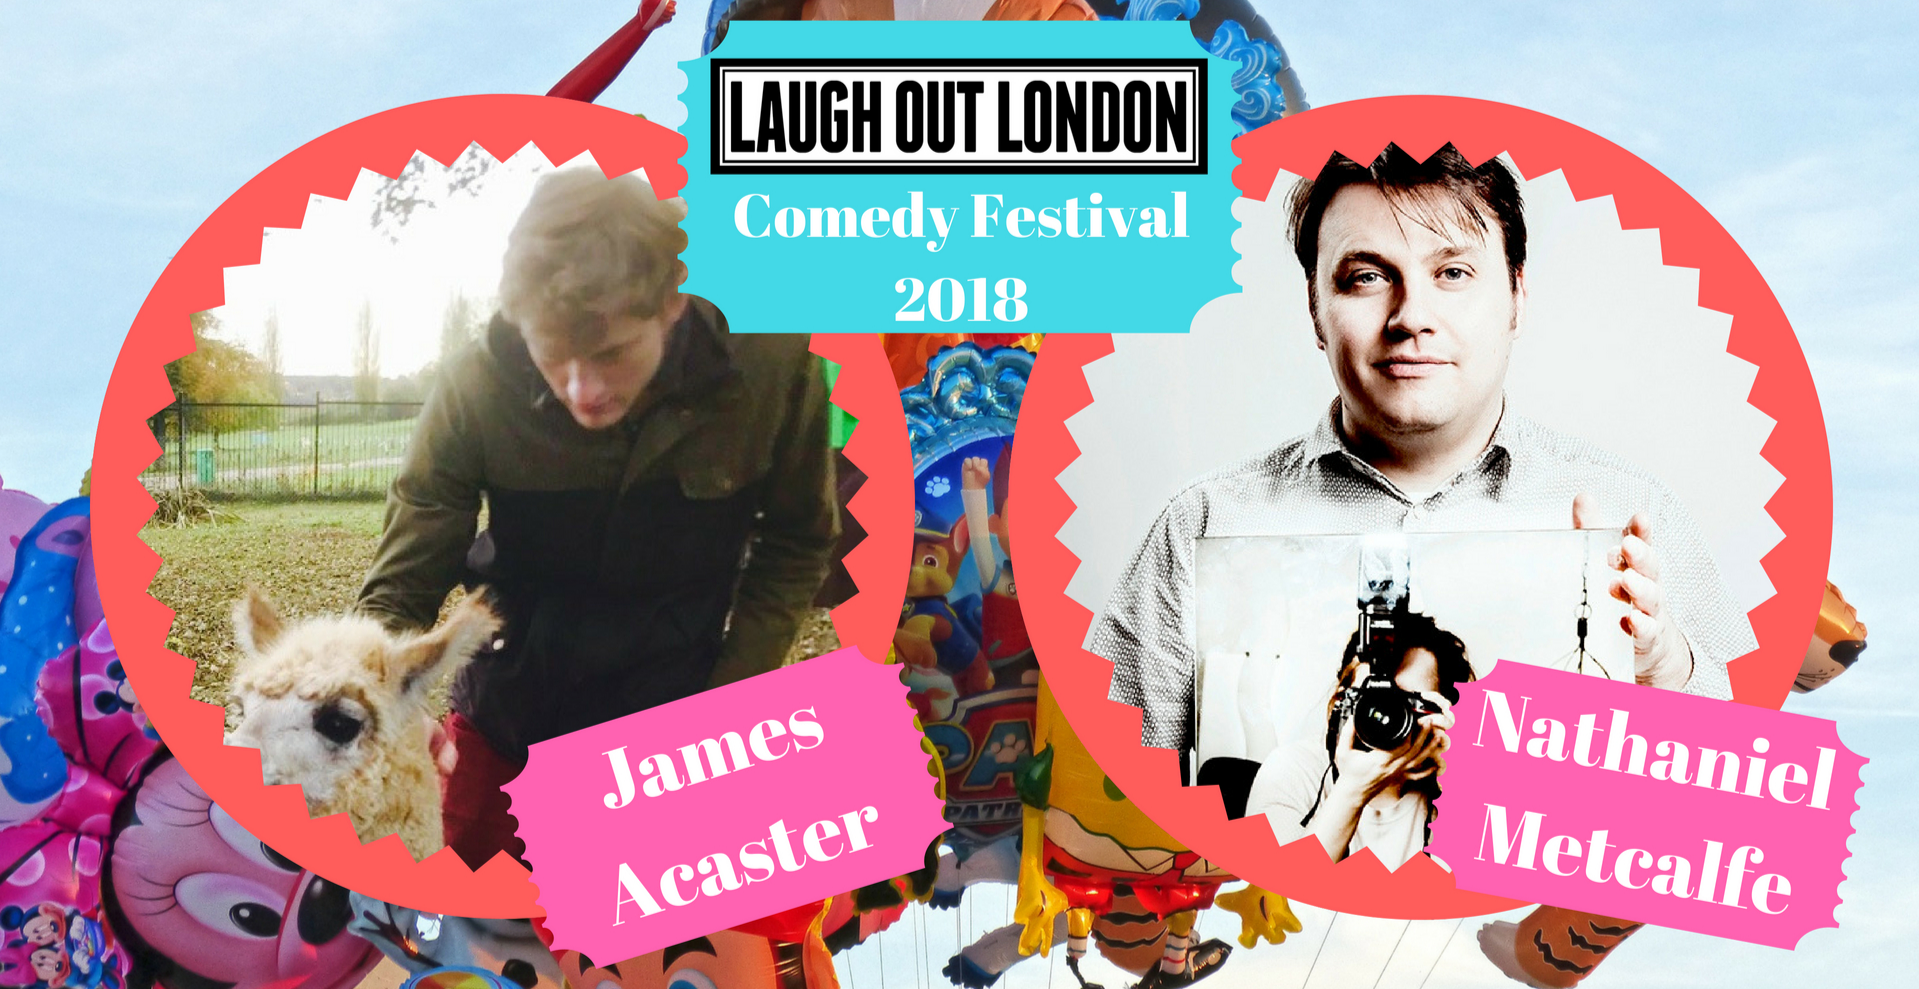 James Acaster and Nathaniel Metcalfe - Laugh Out London Comedy Festival 2018